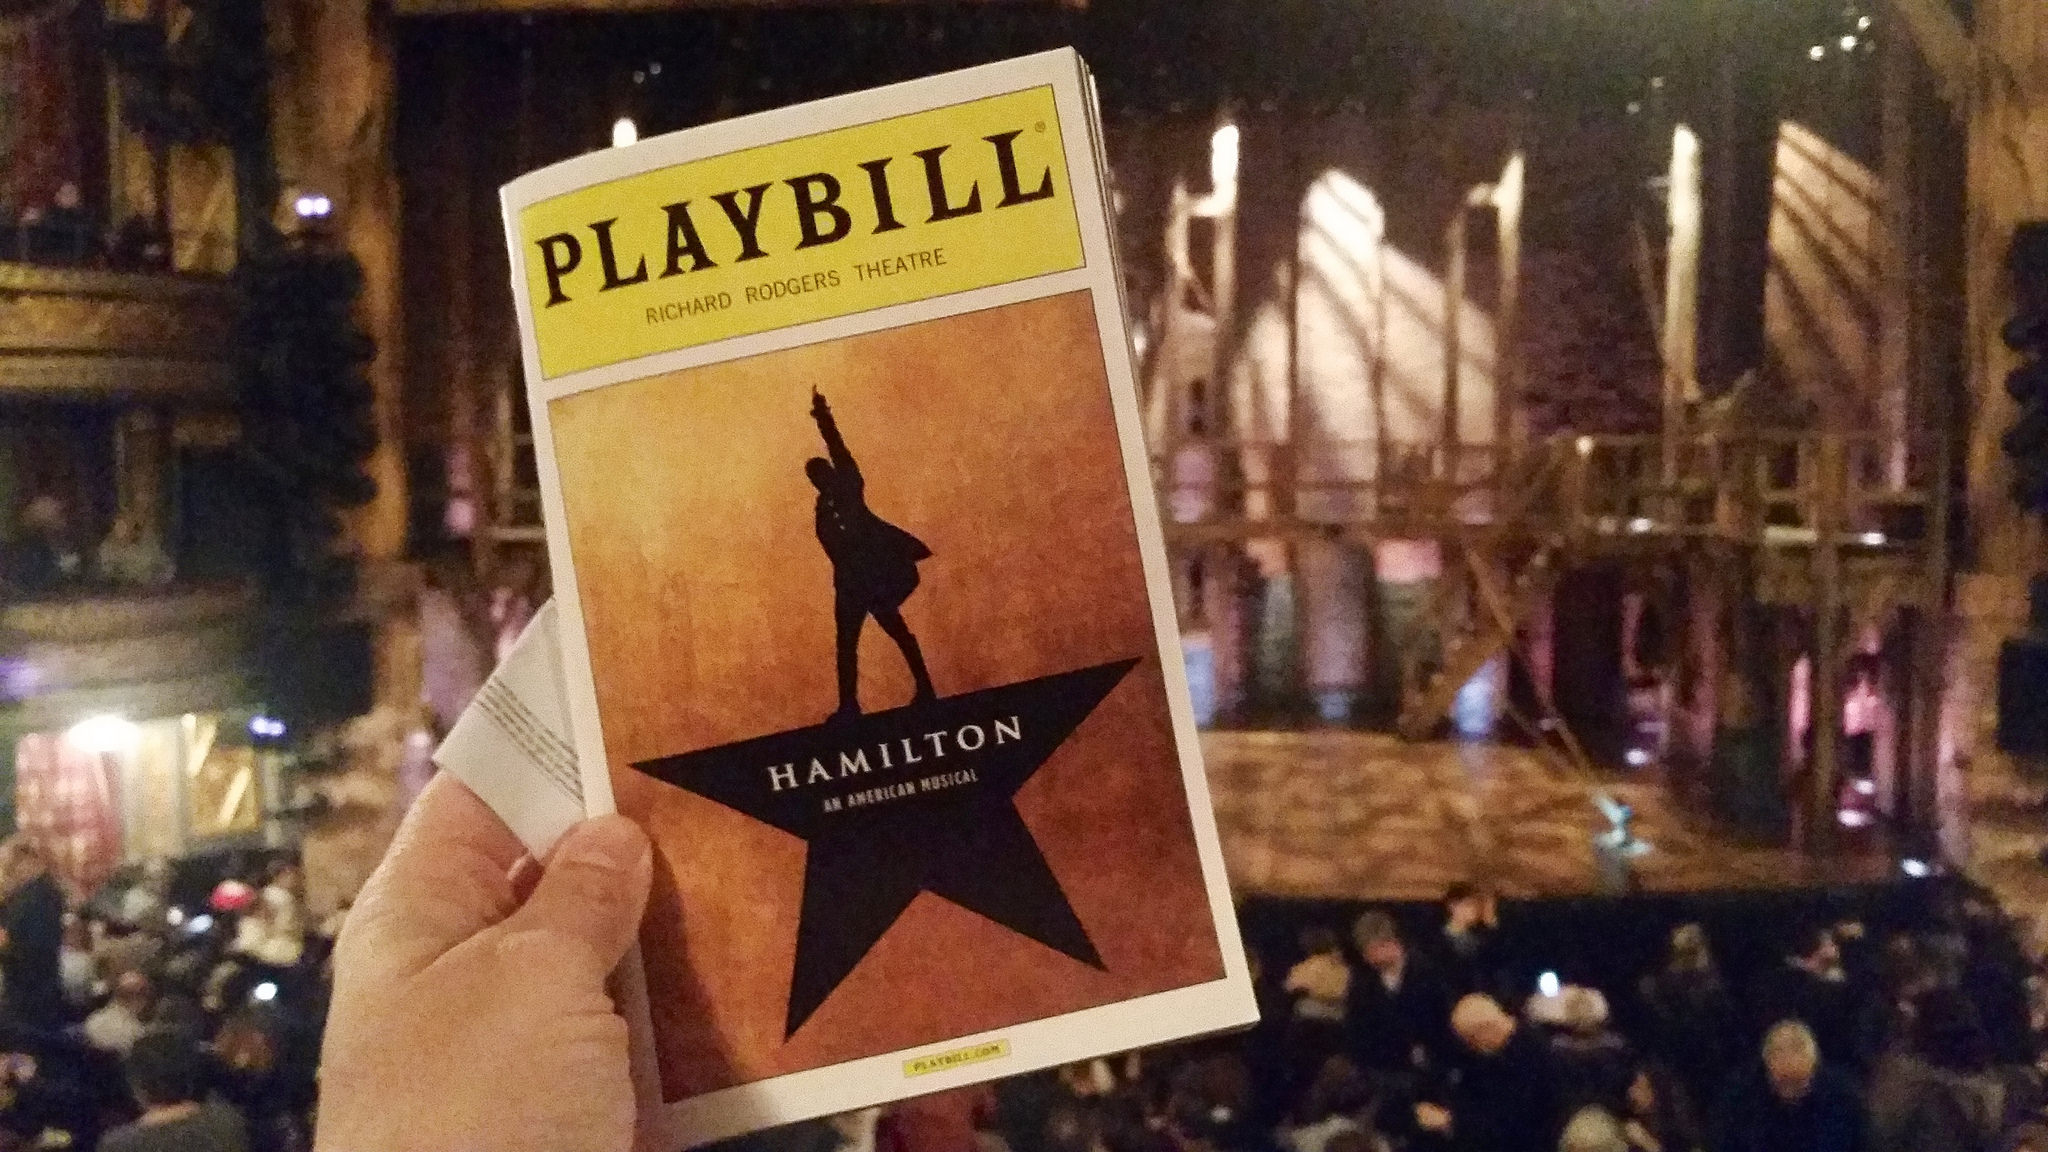 What inspired the Hamilton stage